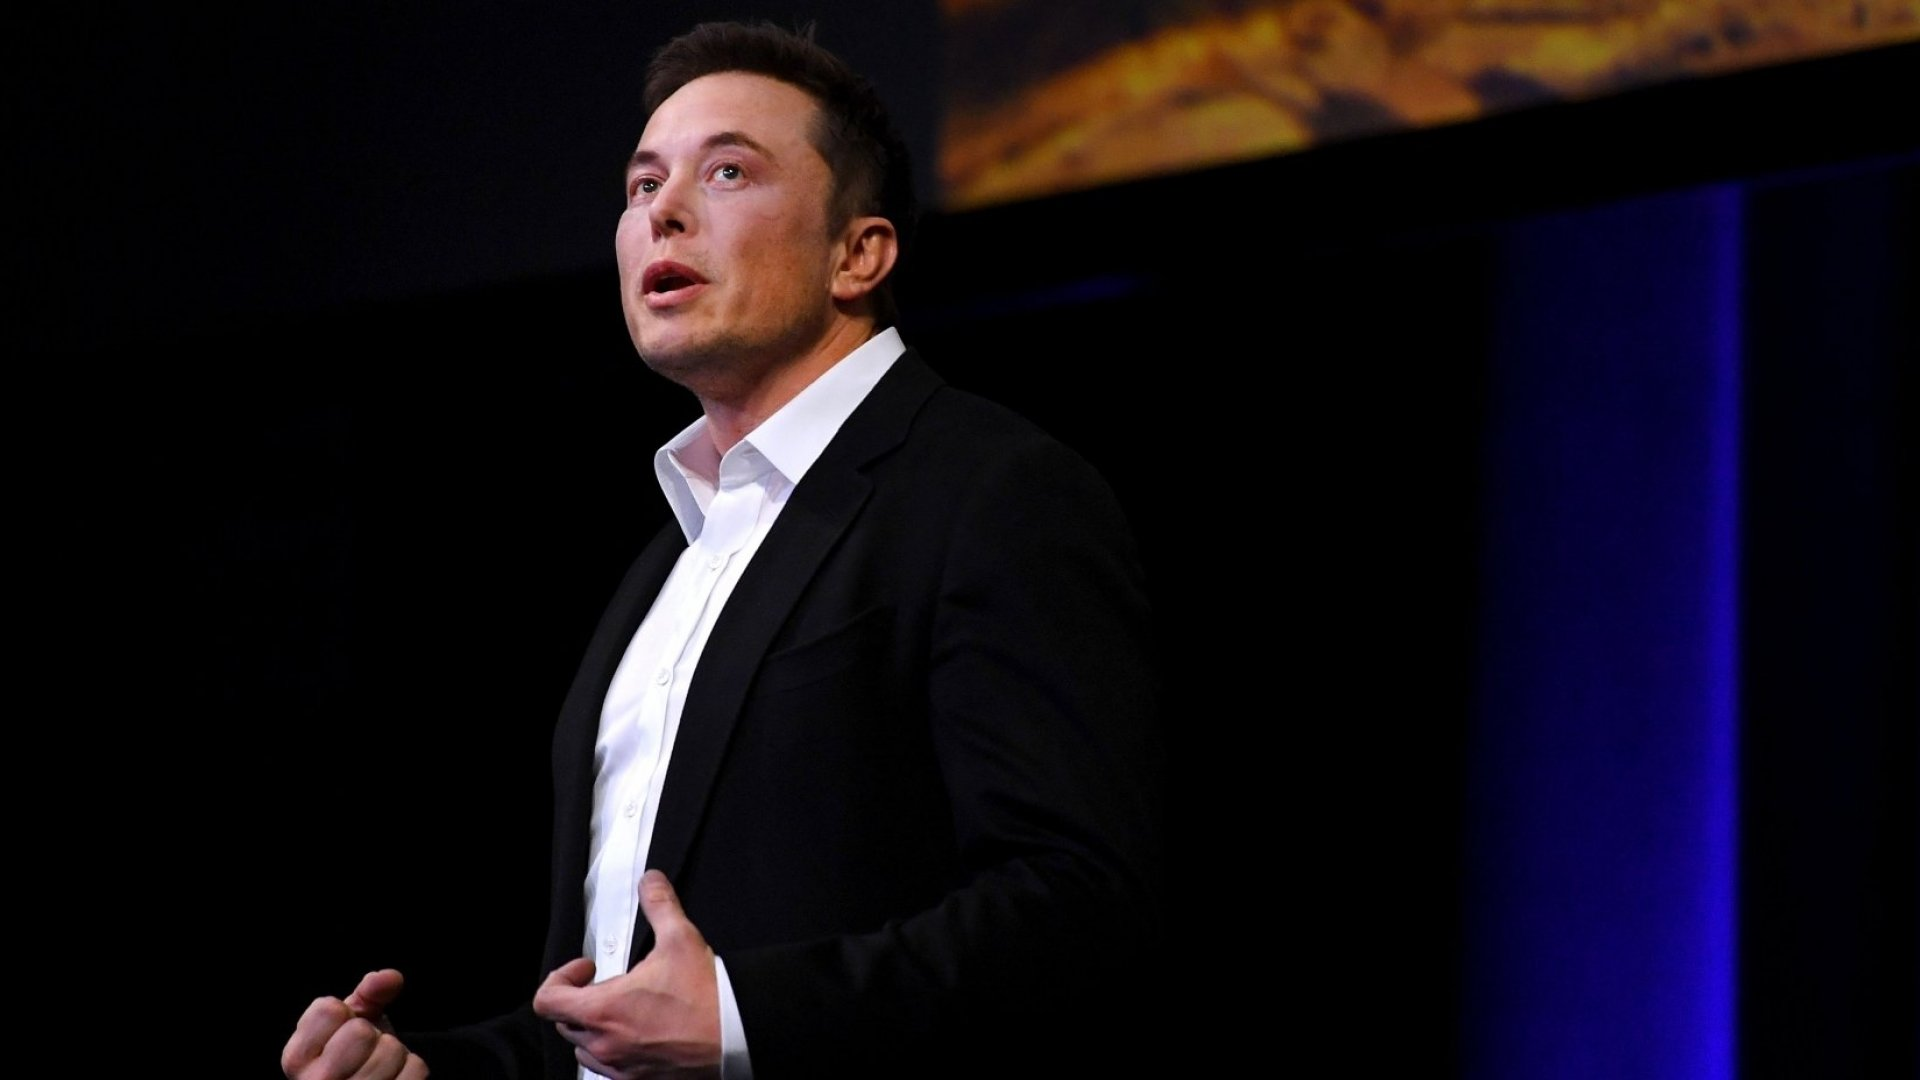 SpaceX CEO Elon Musk speaks at the International Astronautical Congress on September 29, 2017 in Adelaide, Australia. Musk detailed the long-term technical challenges that need to be solved in order to support the creation of a permanent, self-sustaining human presence on Mars.